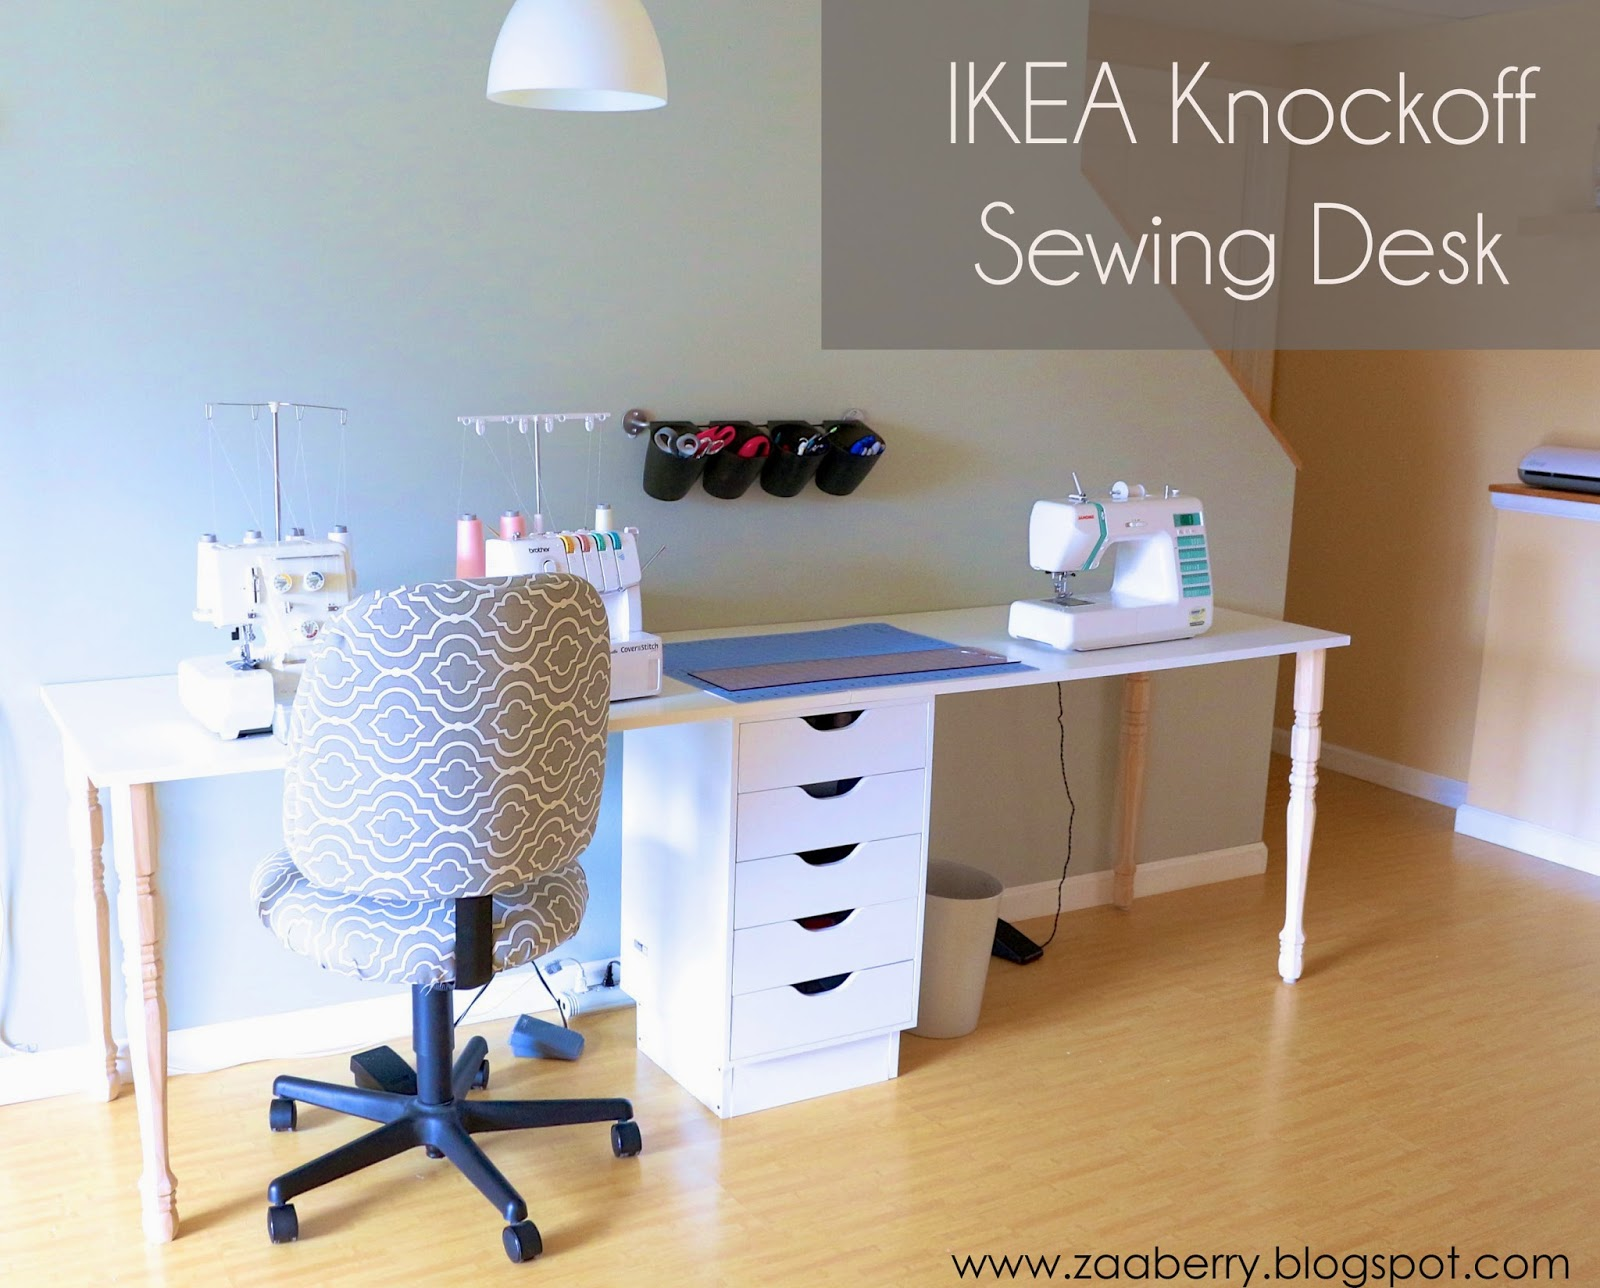 Superieur DIY IKEA Knockoff Sewing Table